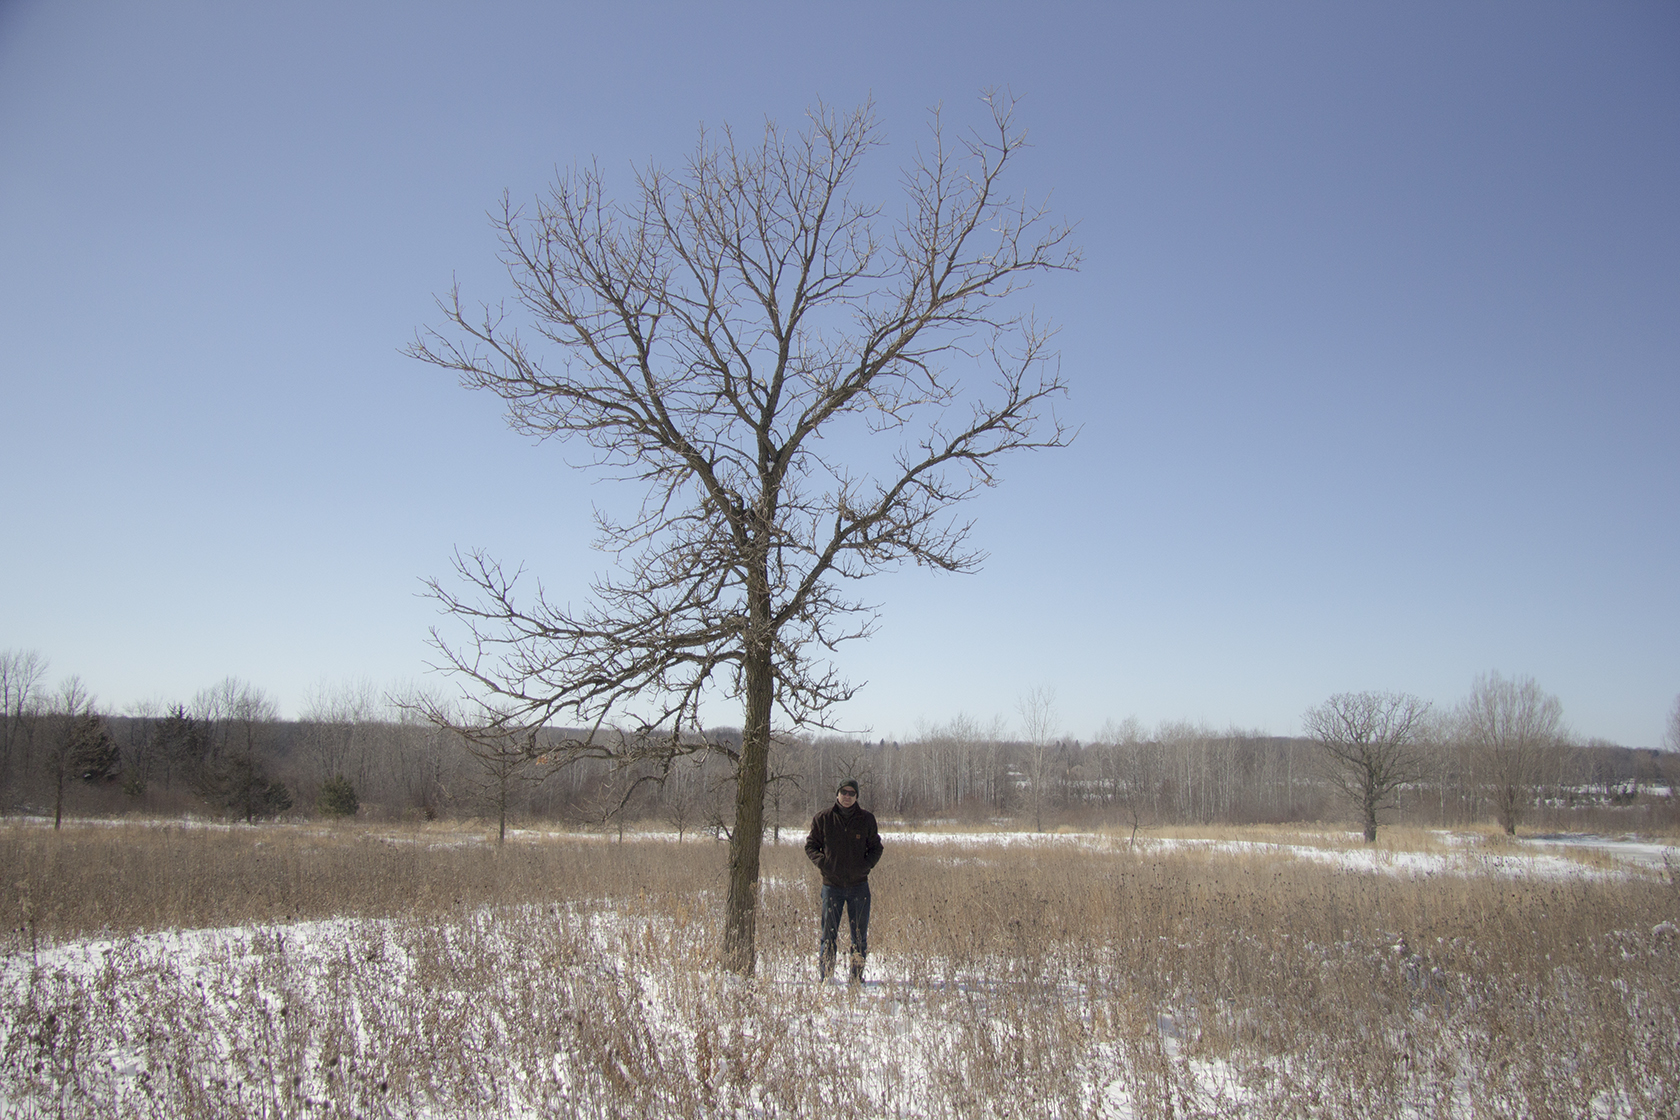 This Bur Oak was about my height when we built our house in 1987. That makes it at least 35 years old.